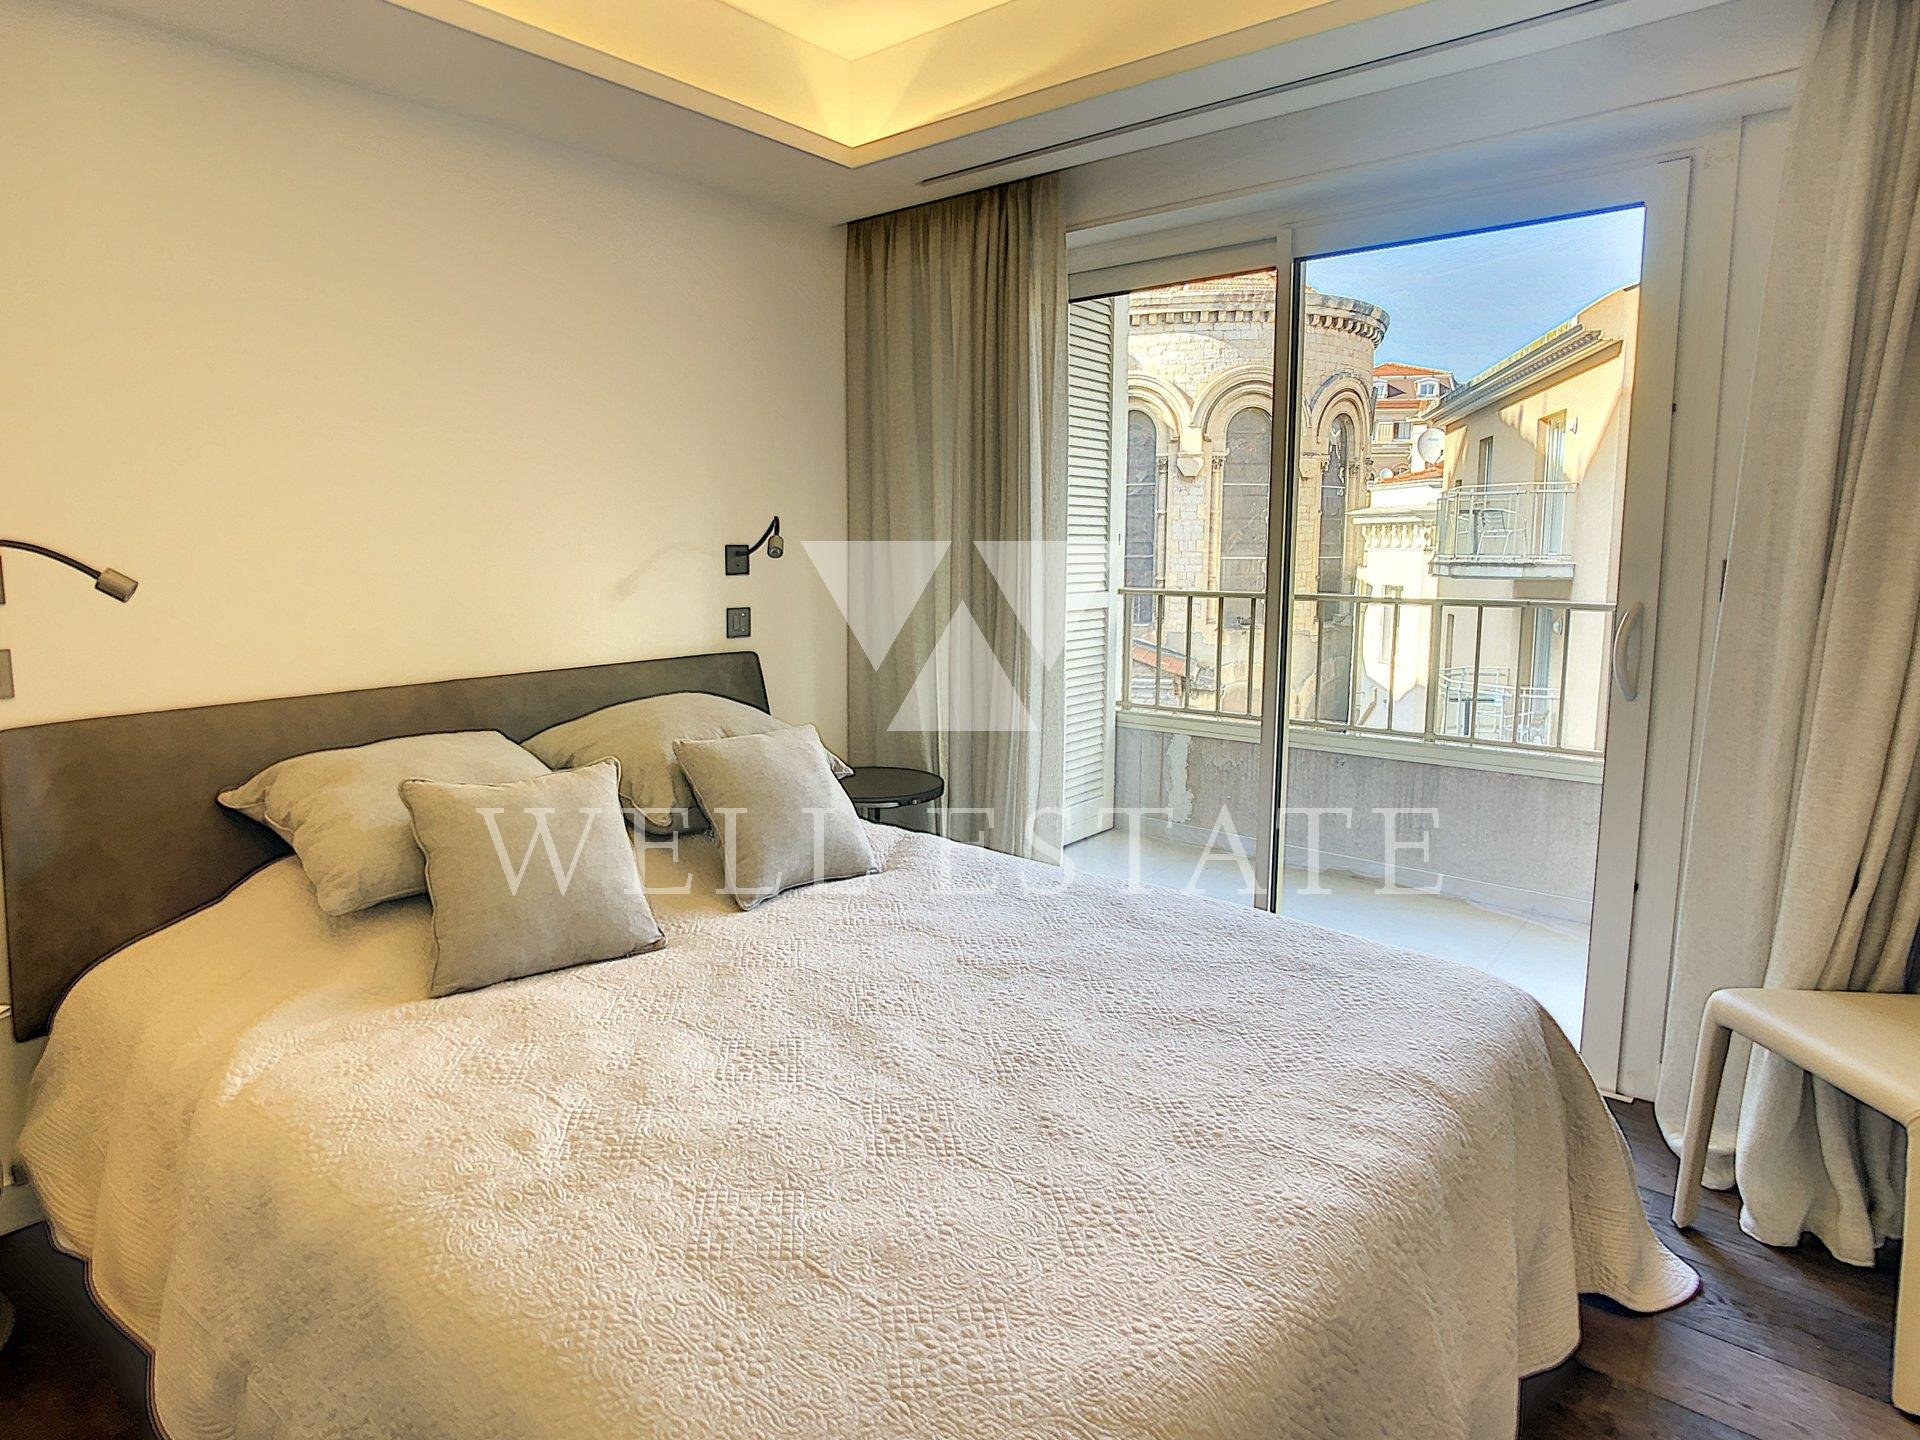 CANNES CROISETTE 3 BEDROOM APARTMENT OF 110M2 WITH  TERRACE SEA VIEW